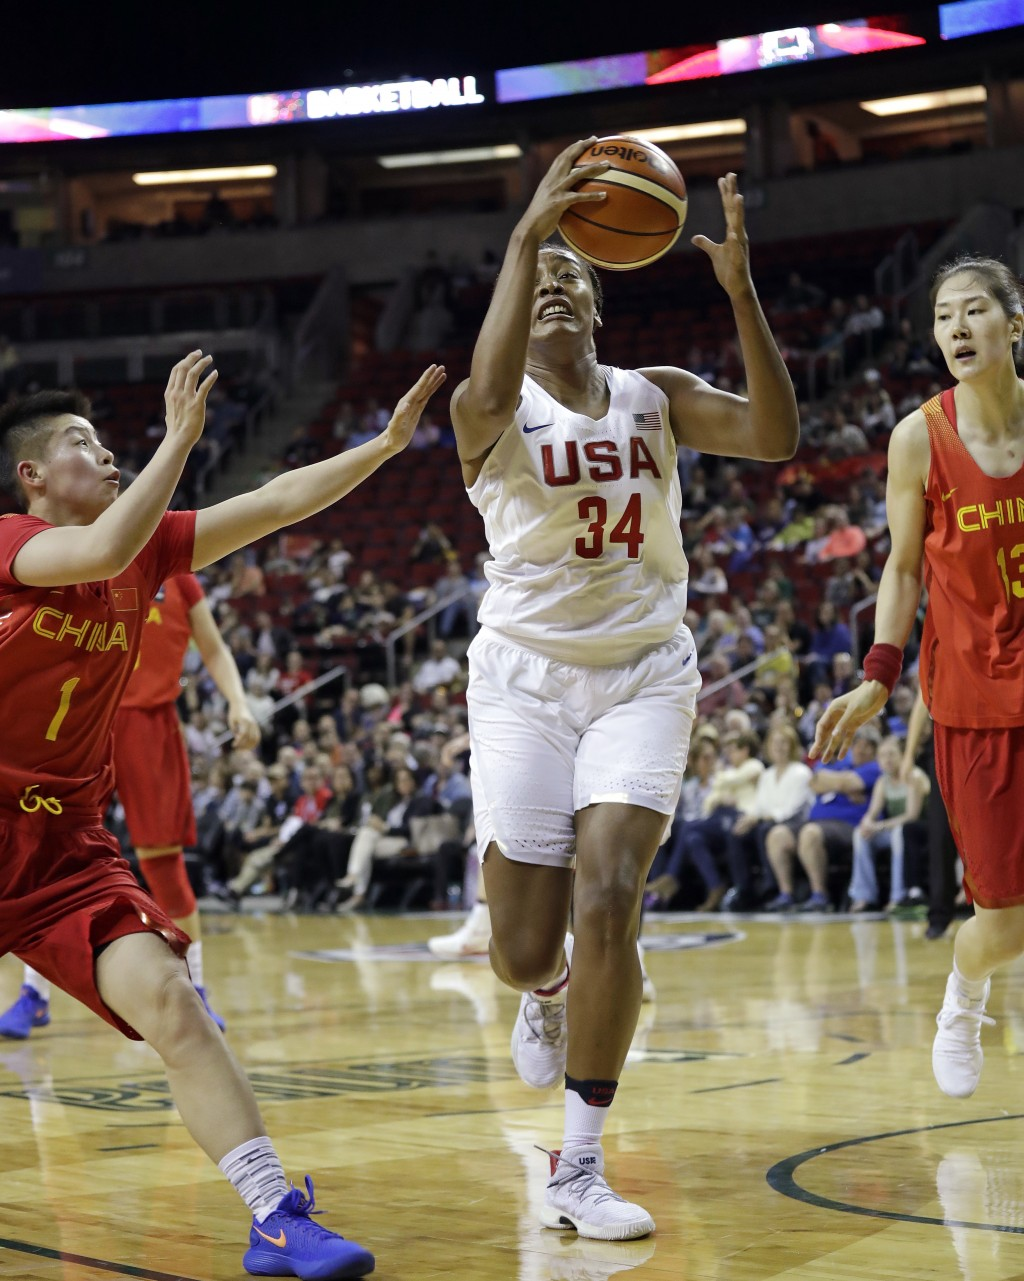 United States' Morgan Tuck (34) drives between China's Yuan Li (1) and Mengran Sun in the first half of an exhibition basketball game Thursday, April ...